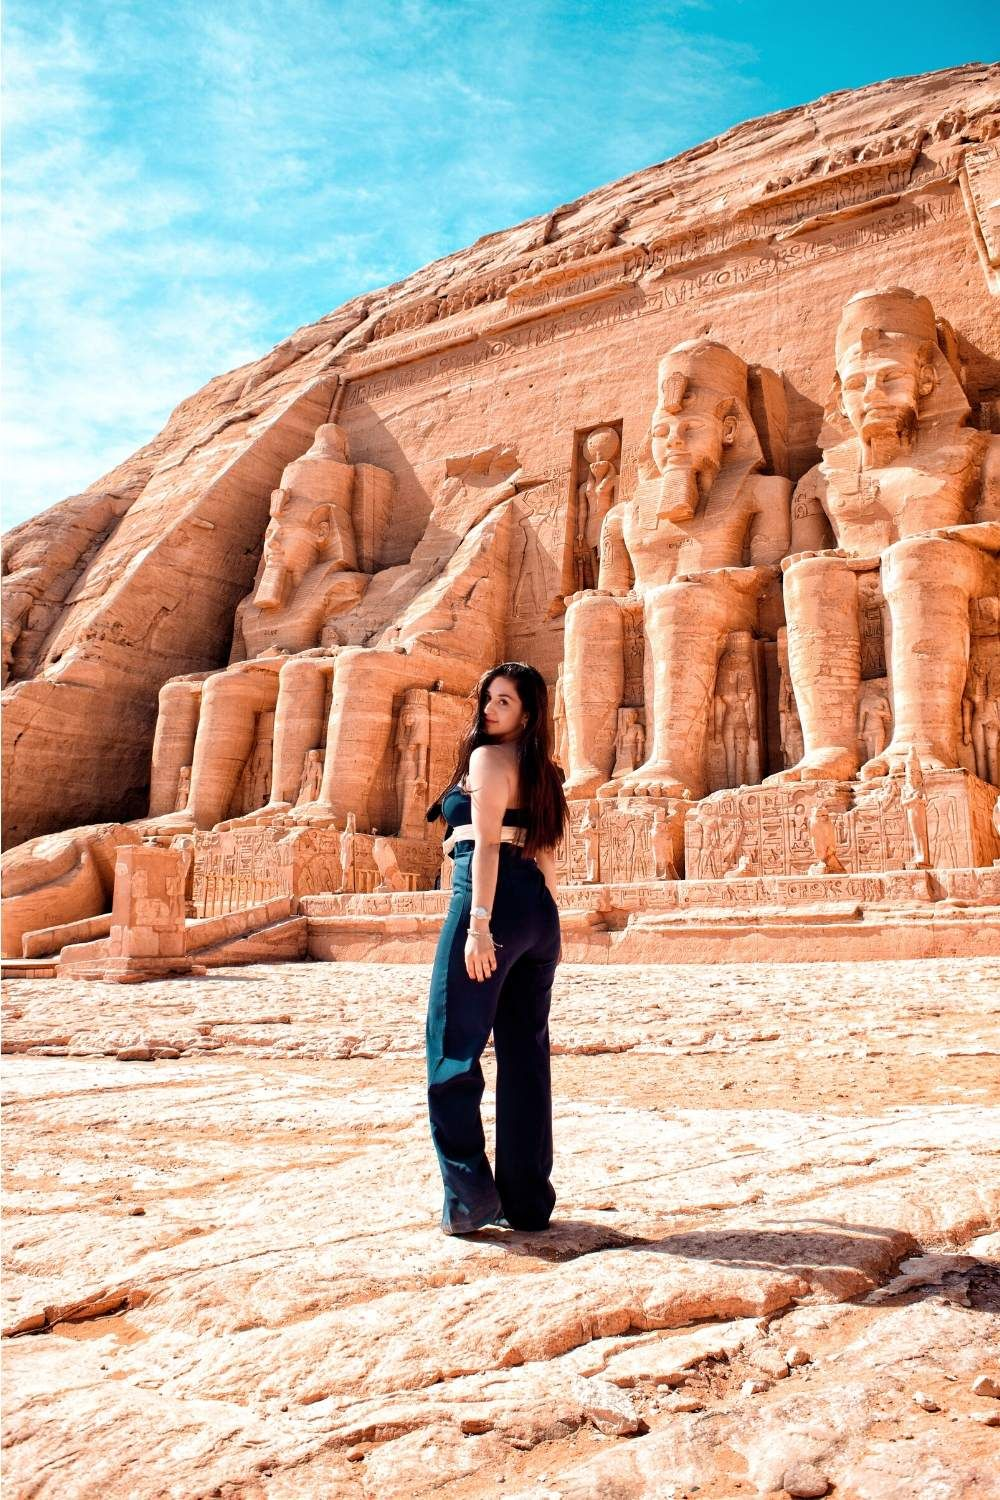 Inspirational Quotes For Travelling Alone Itsallbee Solo Travel Adventure Tips Egypt Travel Luxor Egypt